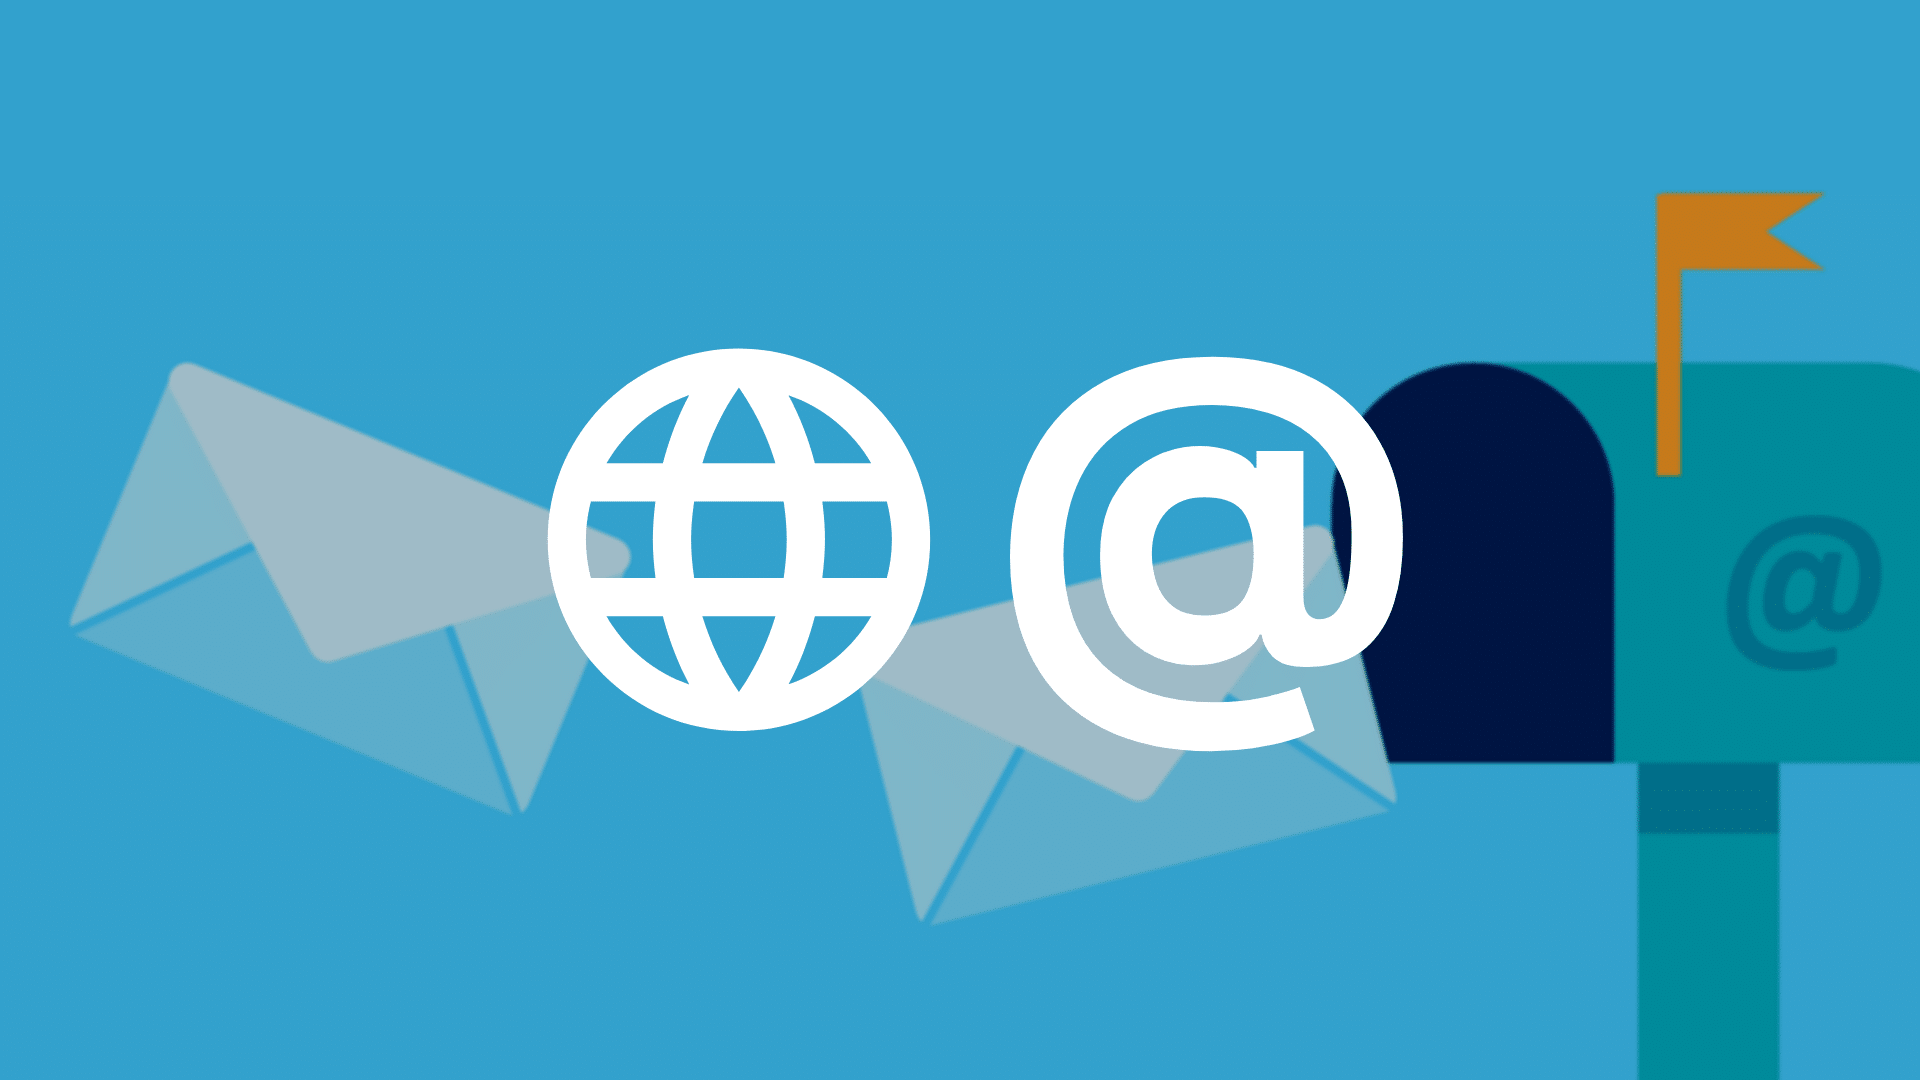 email-icons-mailing-background